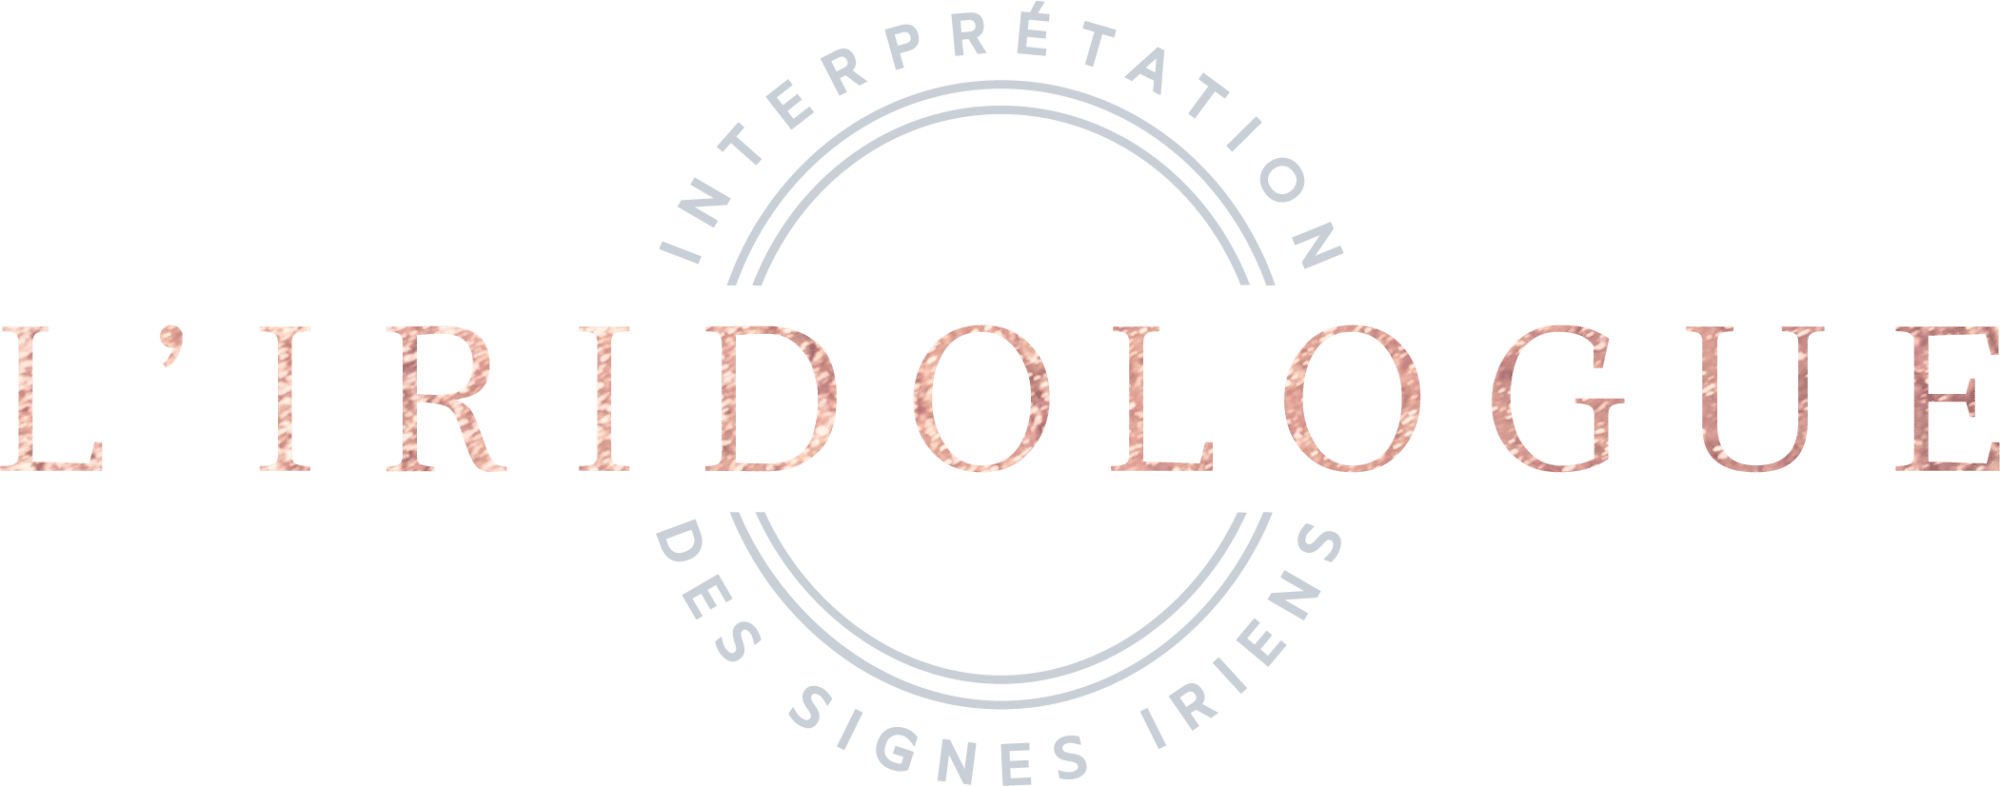 L'Iridologue2018